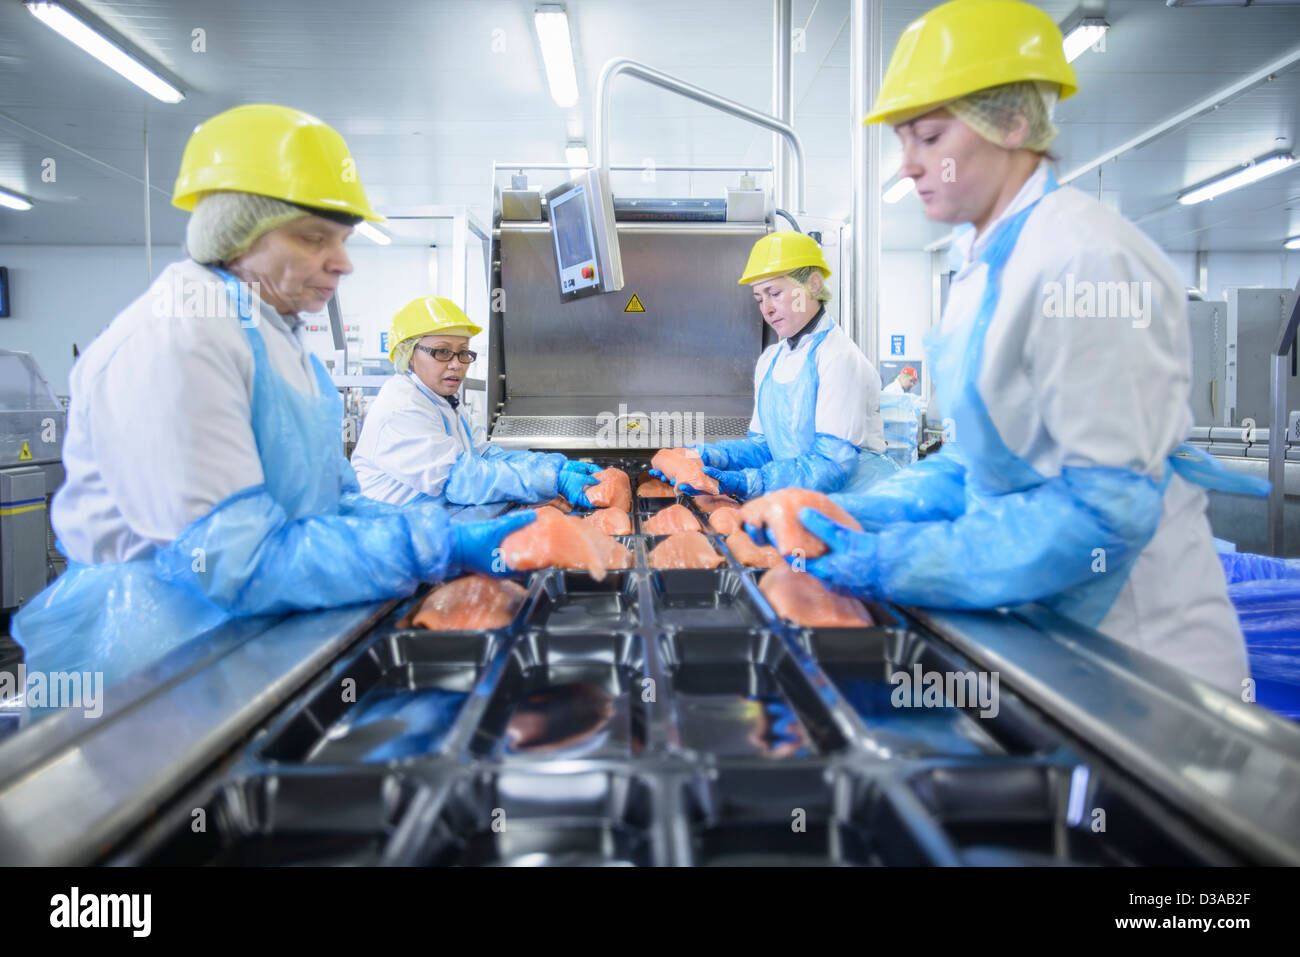 Workers packing salmon in food factory - Stock Image